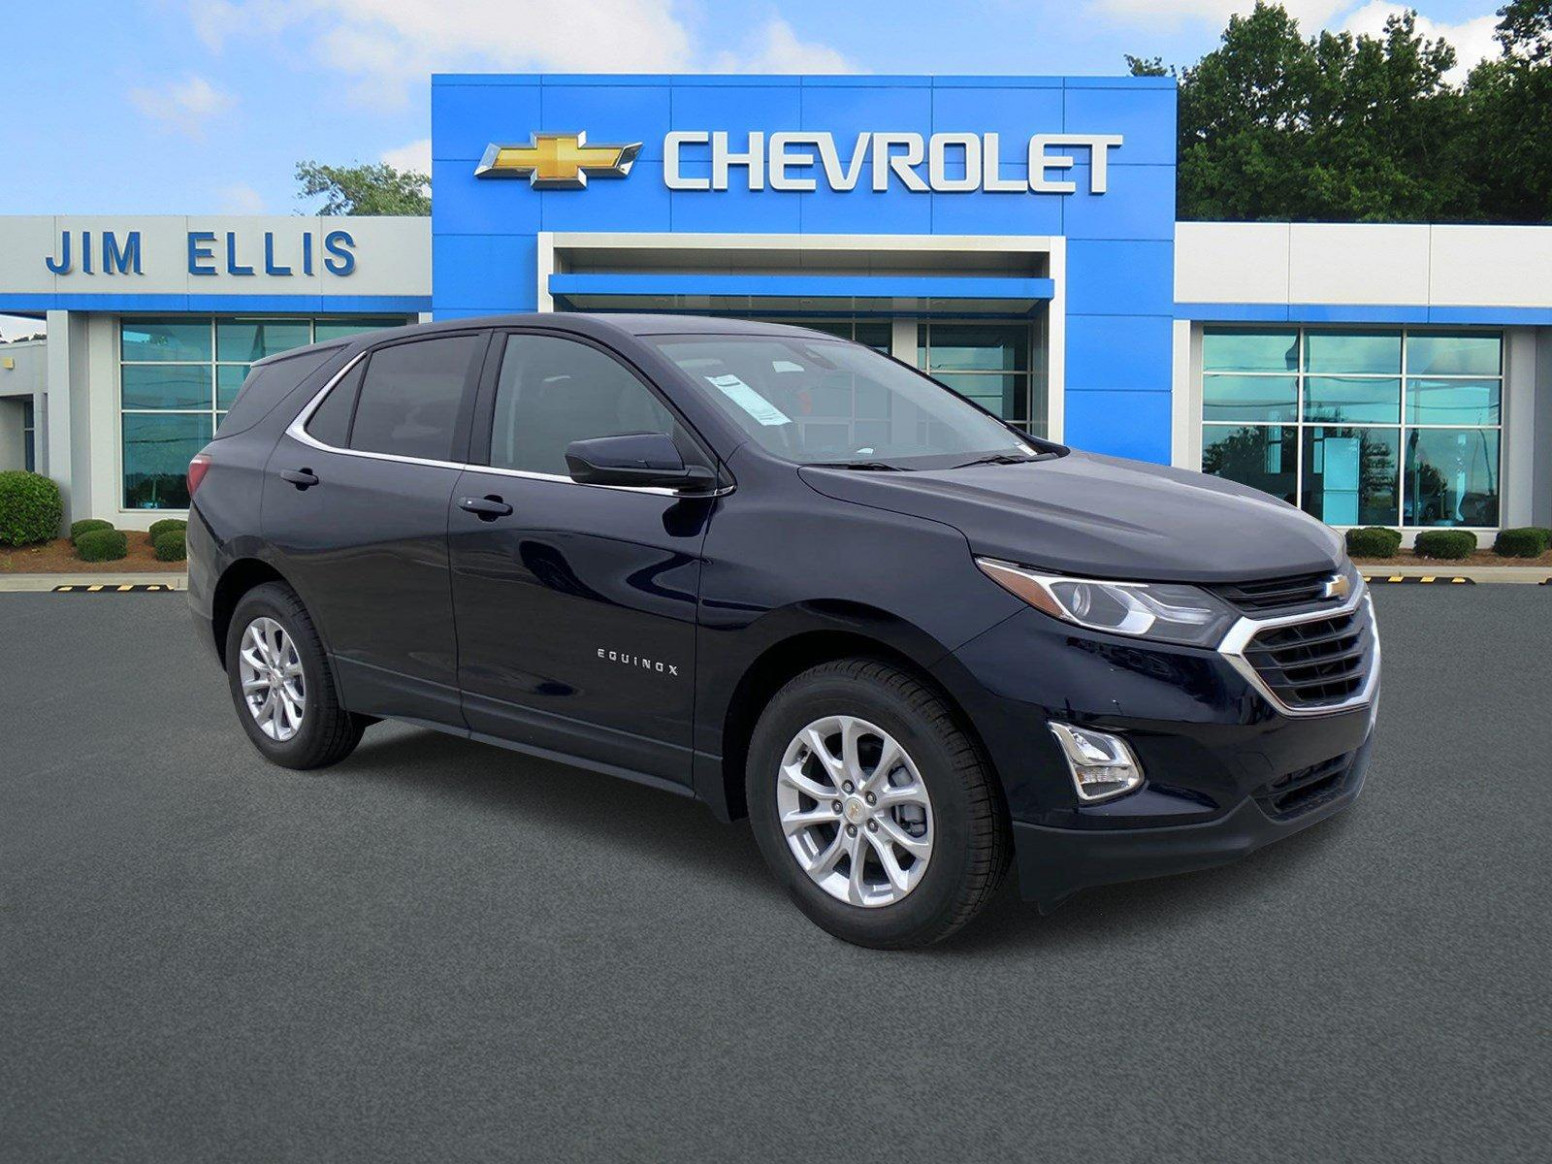 8 New Chevrolet Equinox FWD LT FWD 8dr LT w/8LT for sale in ..